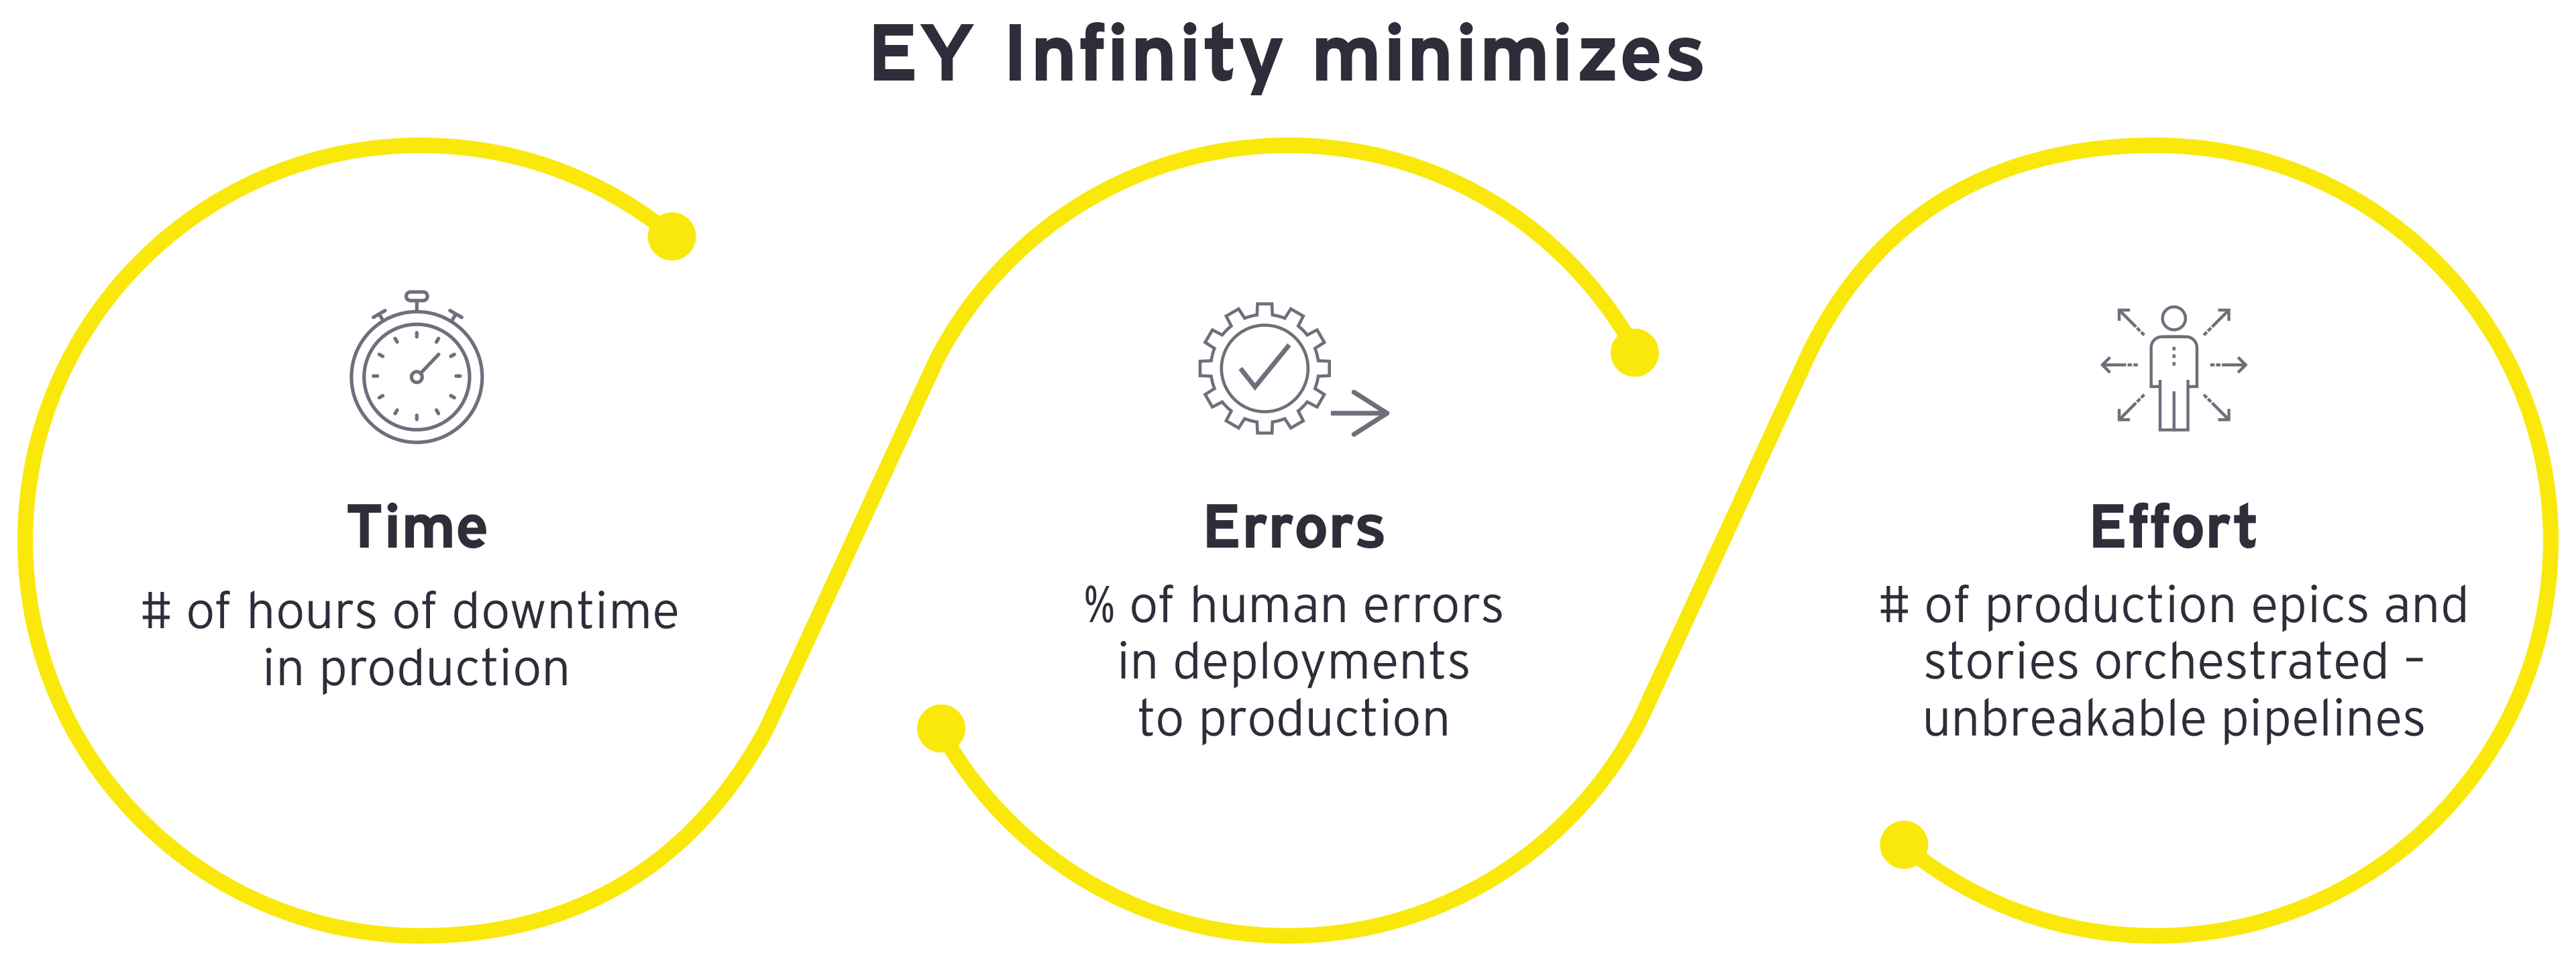 EY Infinity client benefits